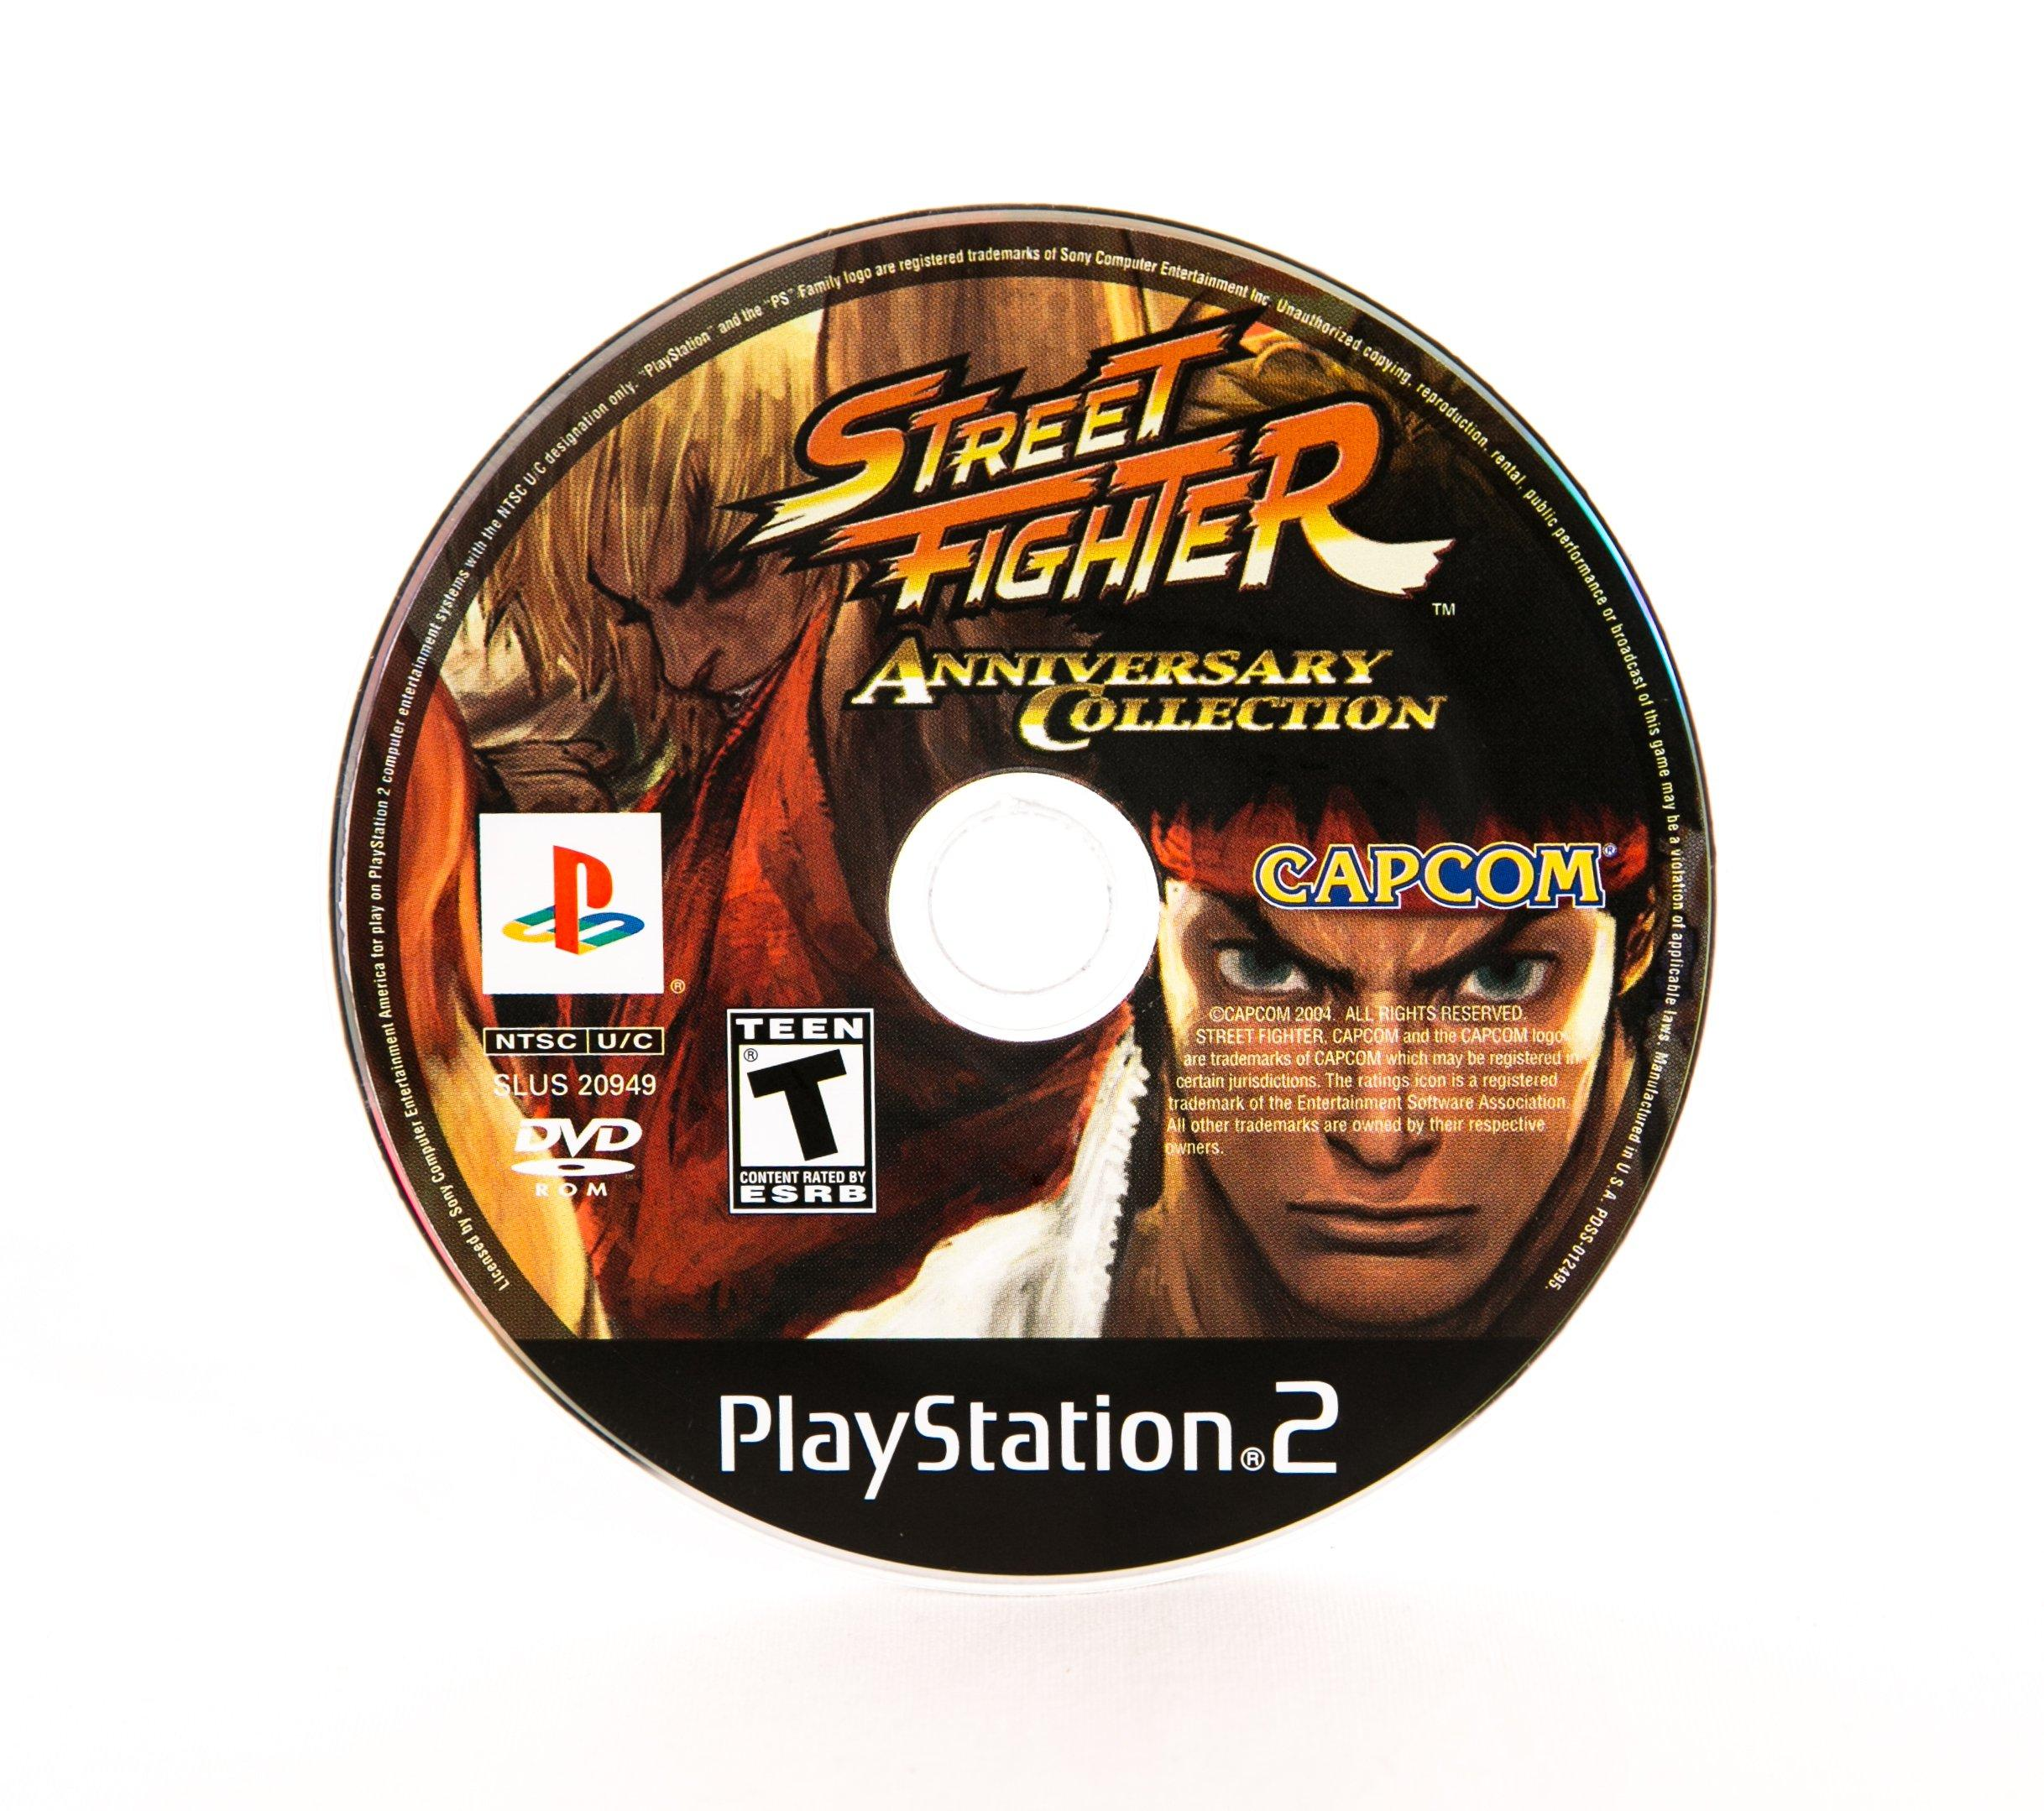 Street Fighter Anniversary Collection Playstation 2 Gamestop